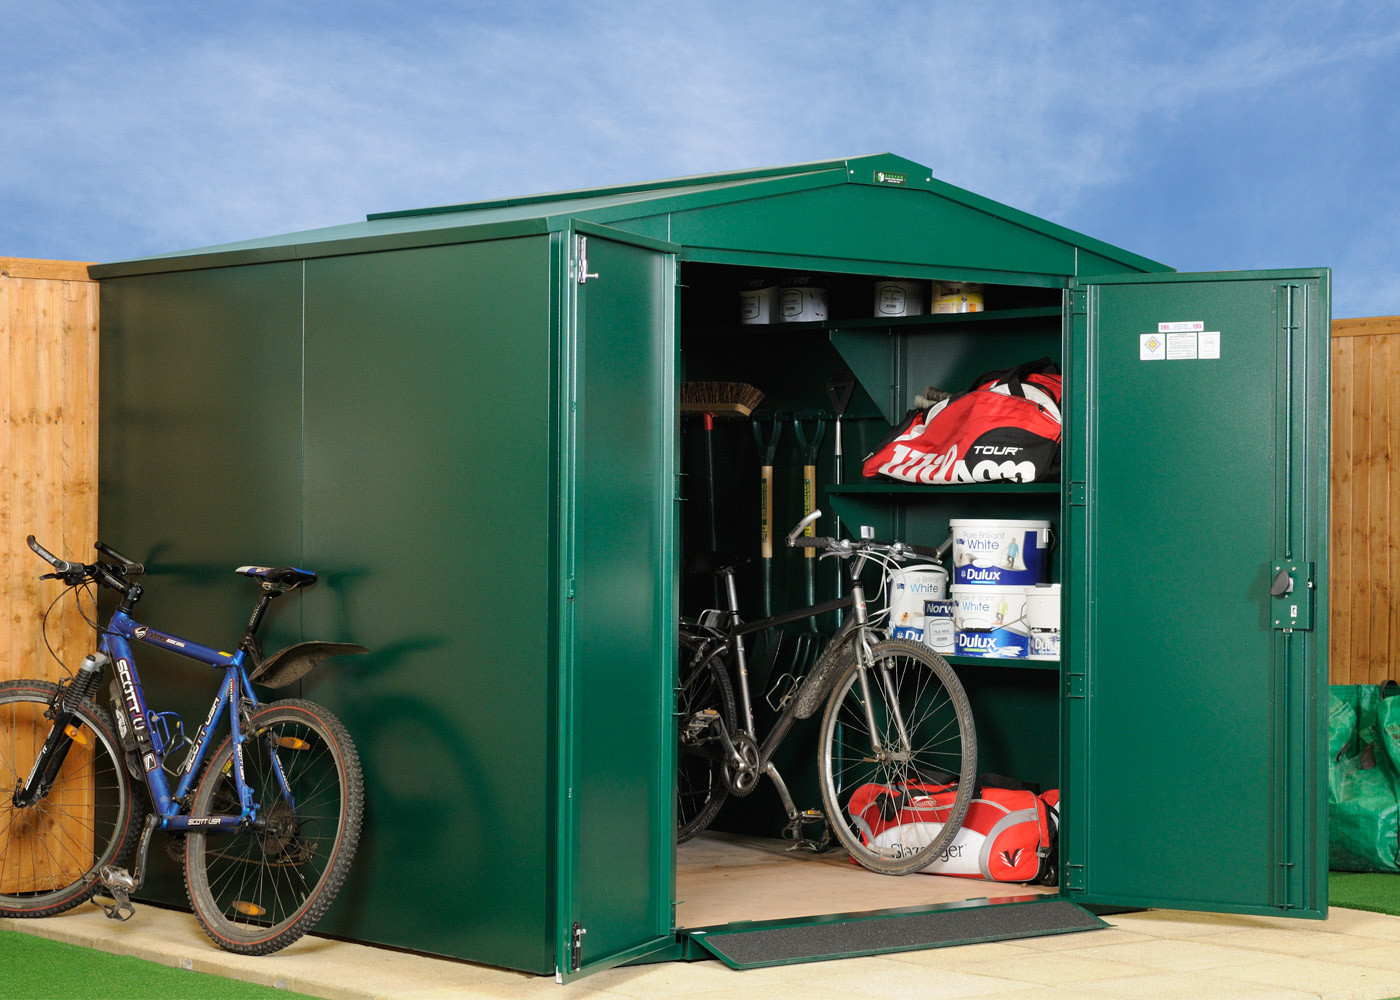 7 x 7 metal steel shed secure garden bike storage. Black Bedroom Furniture Sets. Home Design Ideas